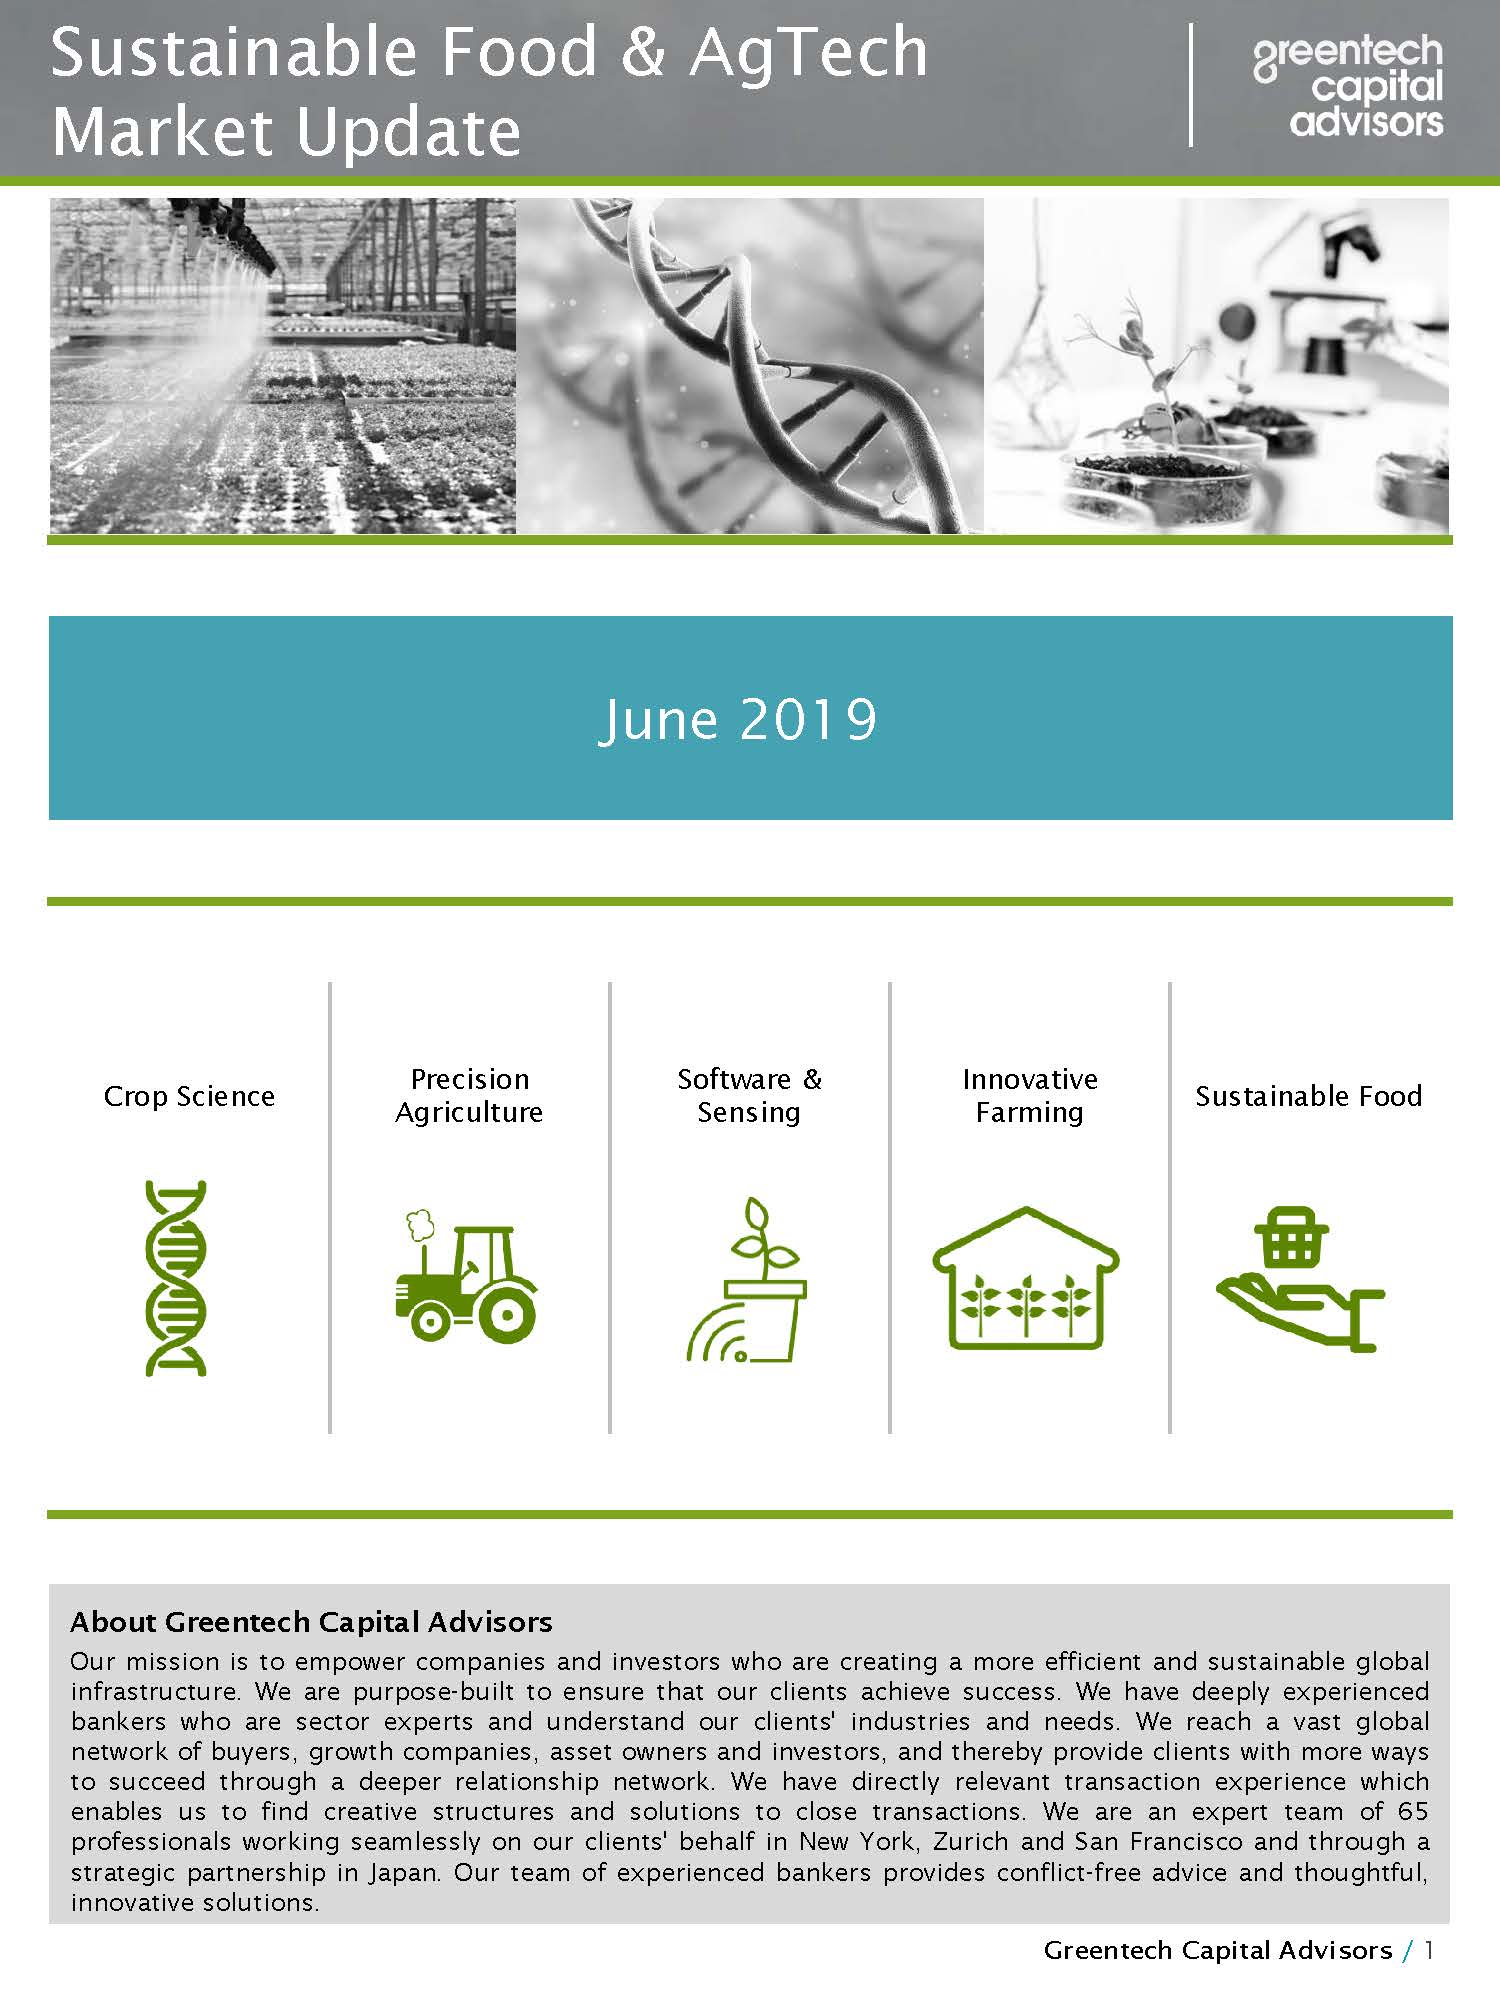 Sustainable Food & AgTech Market Update Newsletter - June 2019